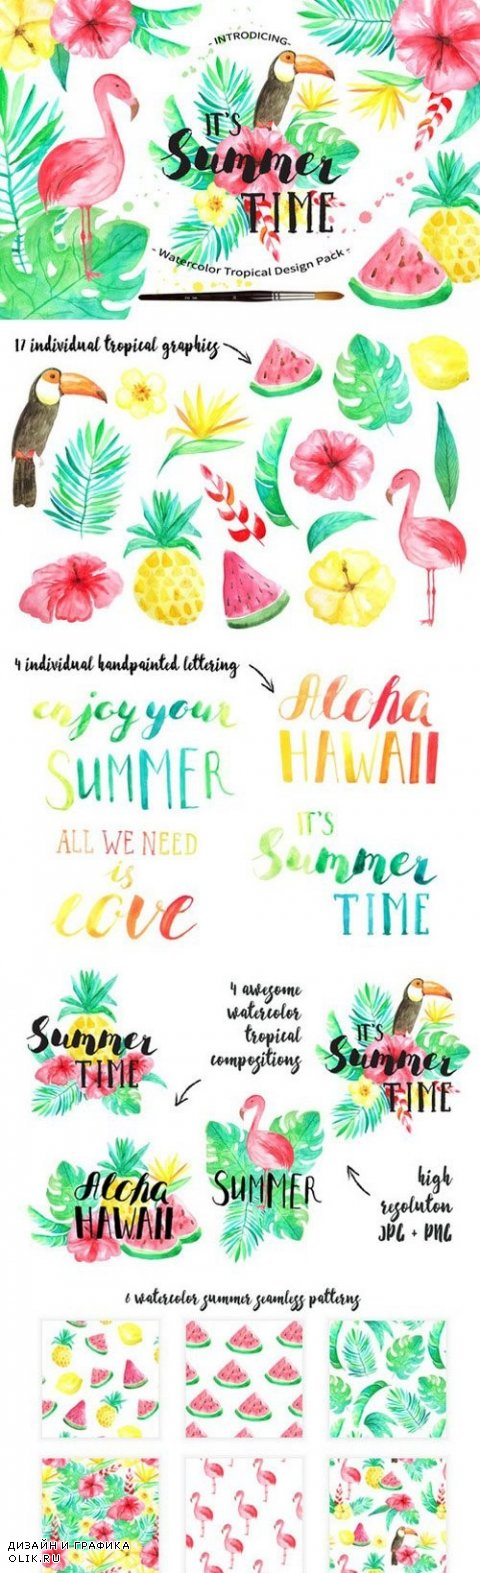 Summer Tropical Design Pack Vol.2 - 750371